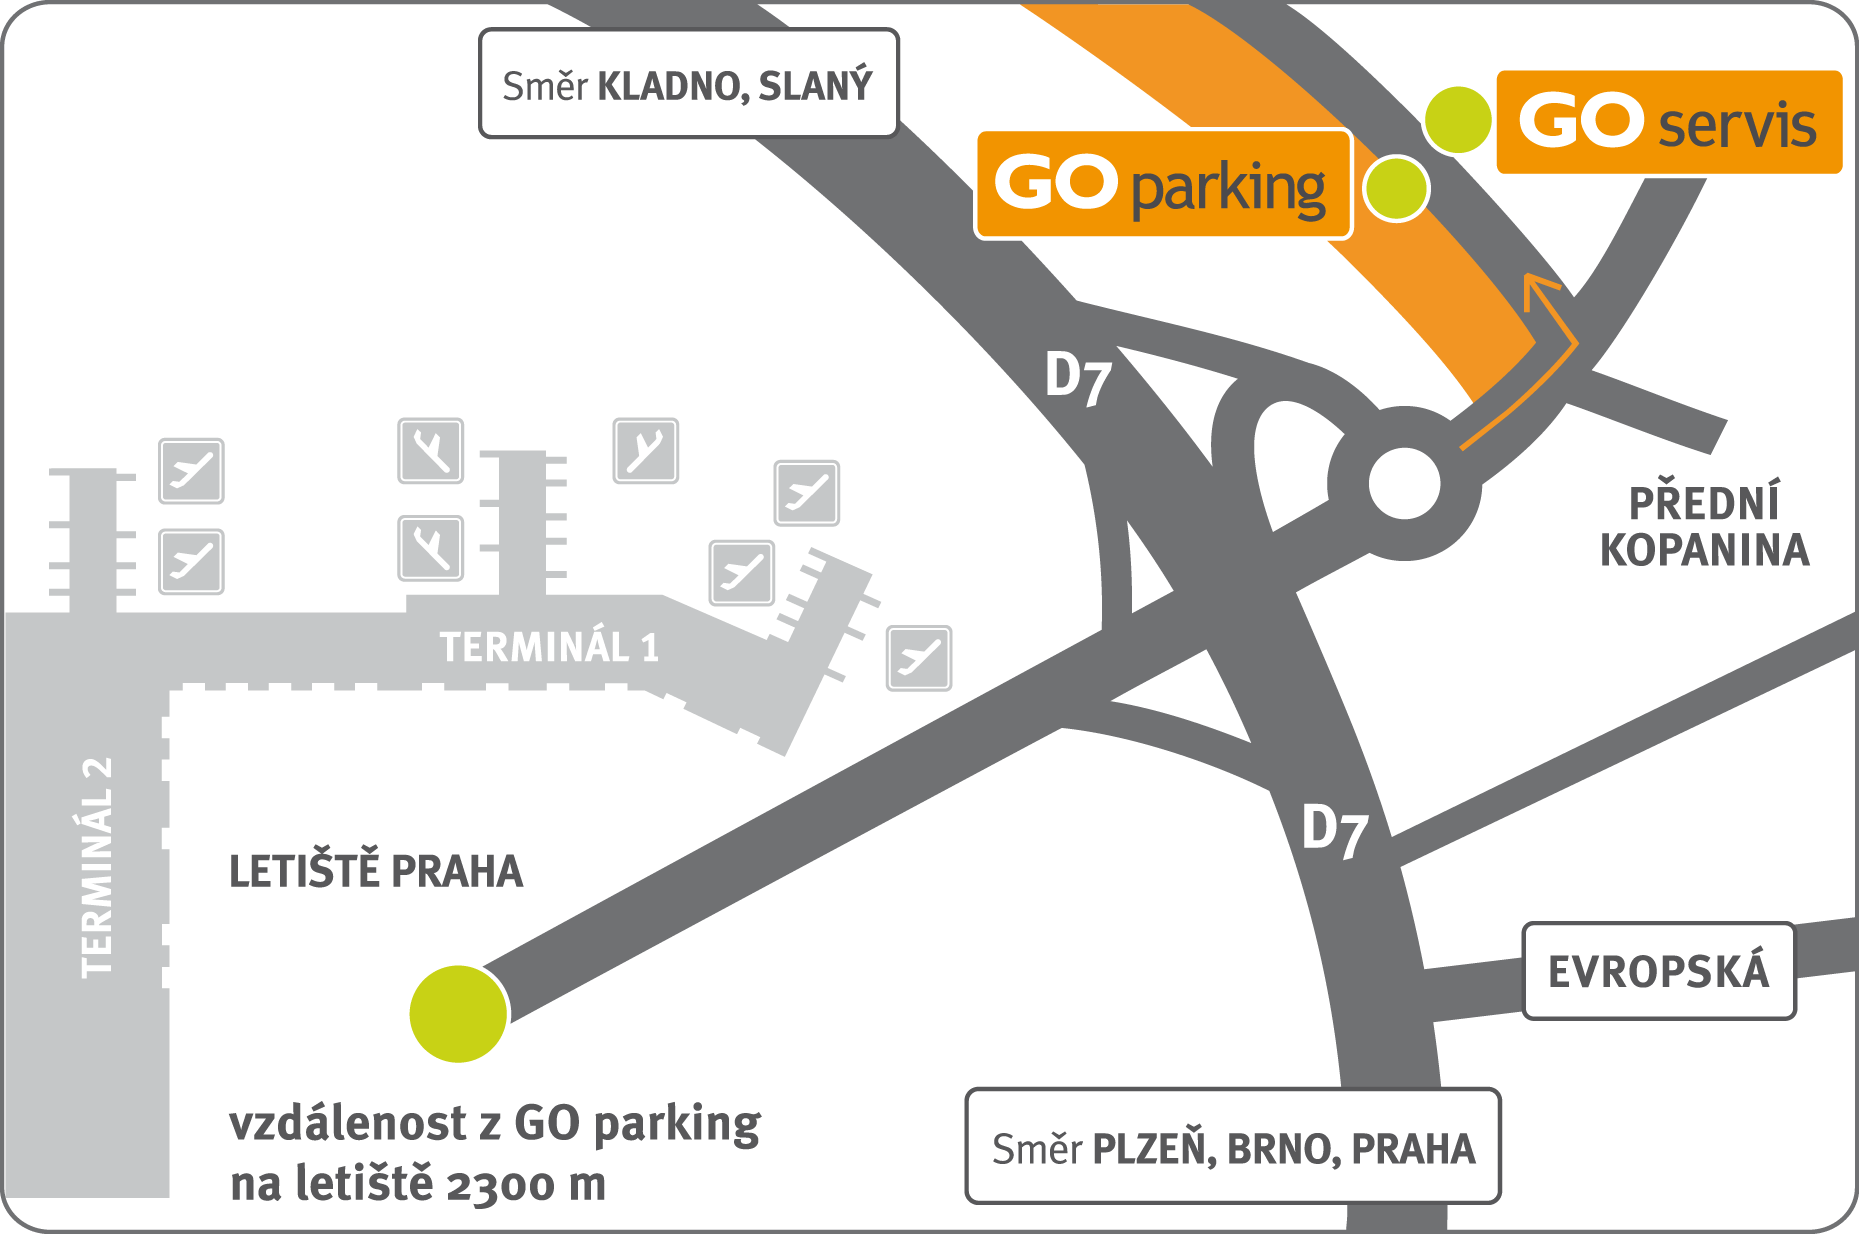 mapka - GO parking